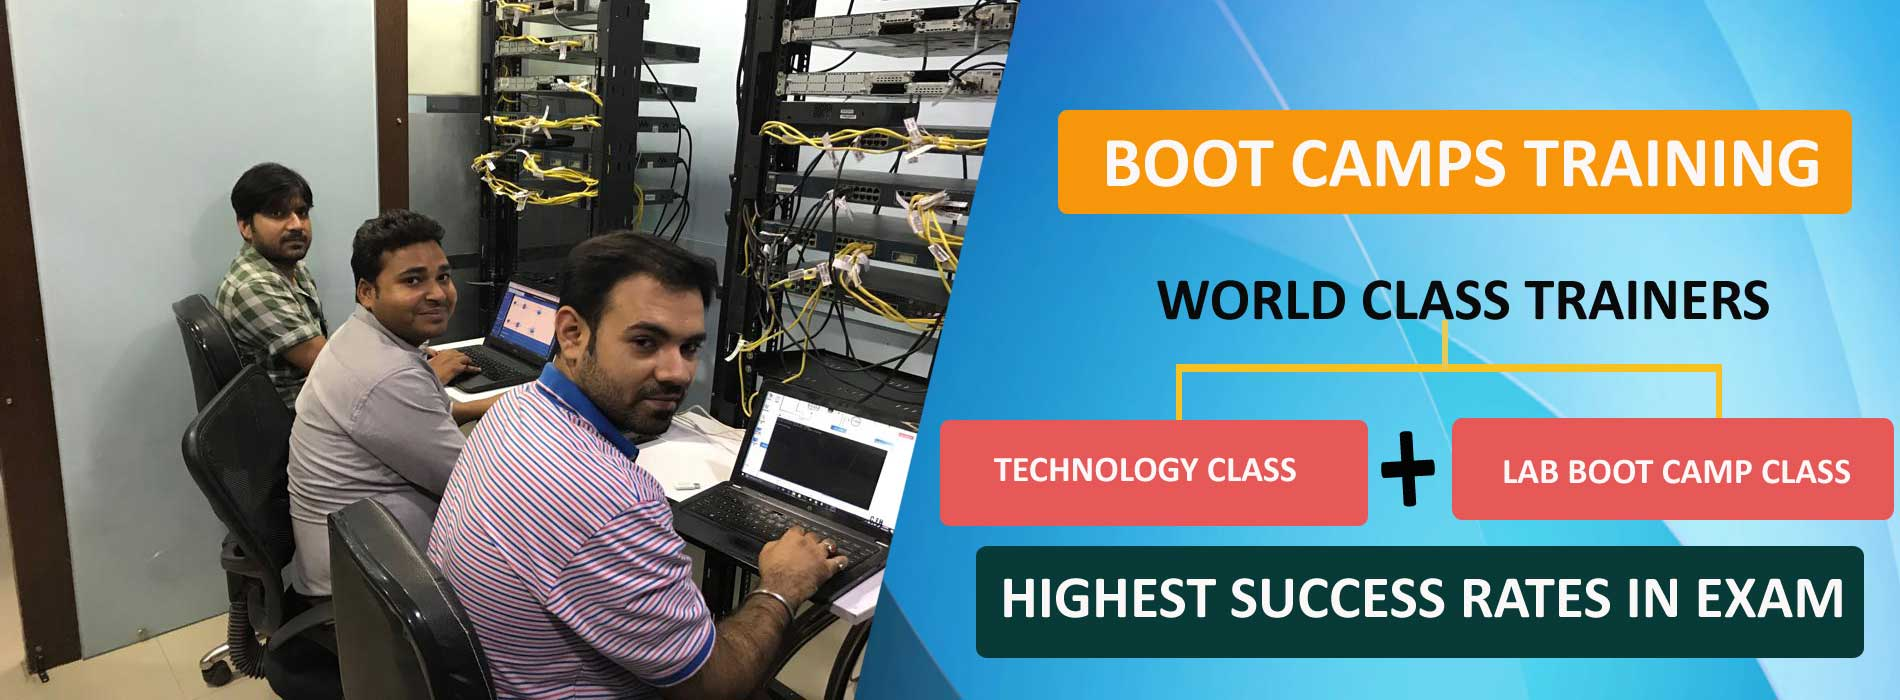 CCIE boot camp training